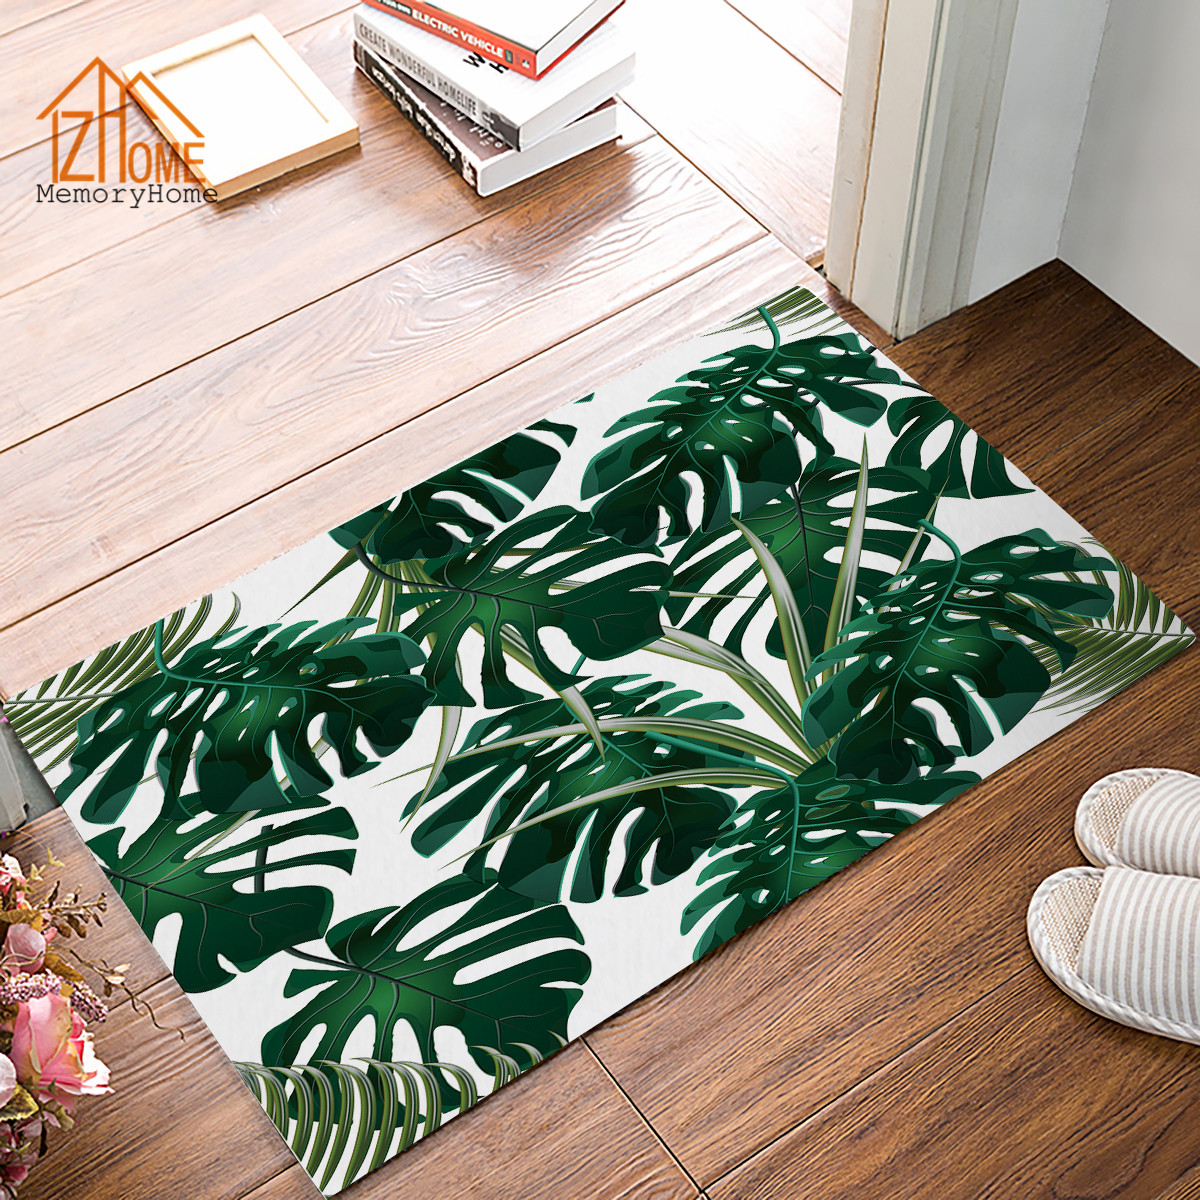 Memory Home Green Tropical Palm Leaves Printed Doormat For